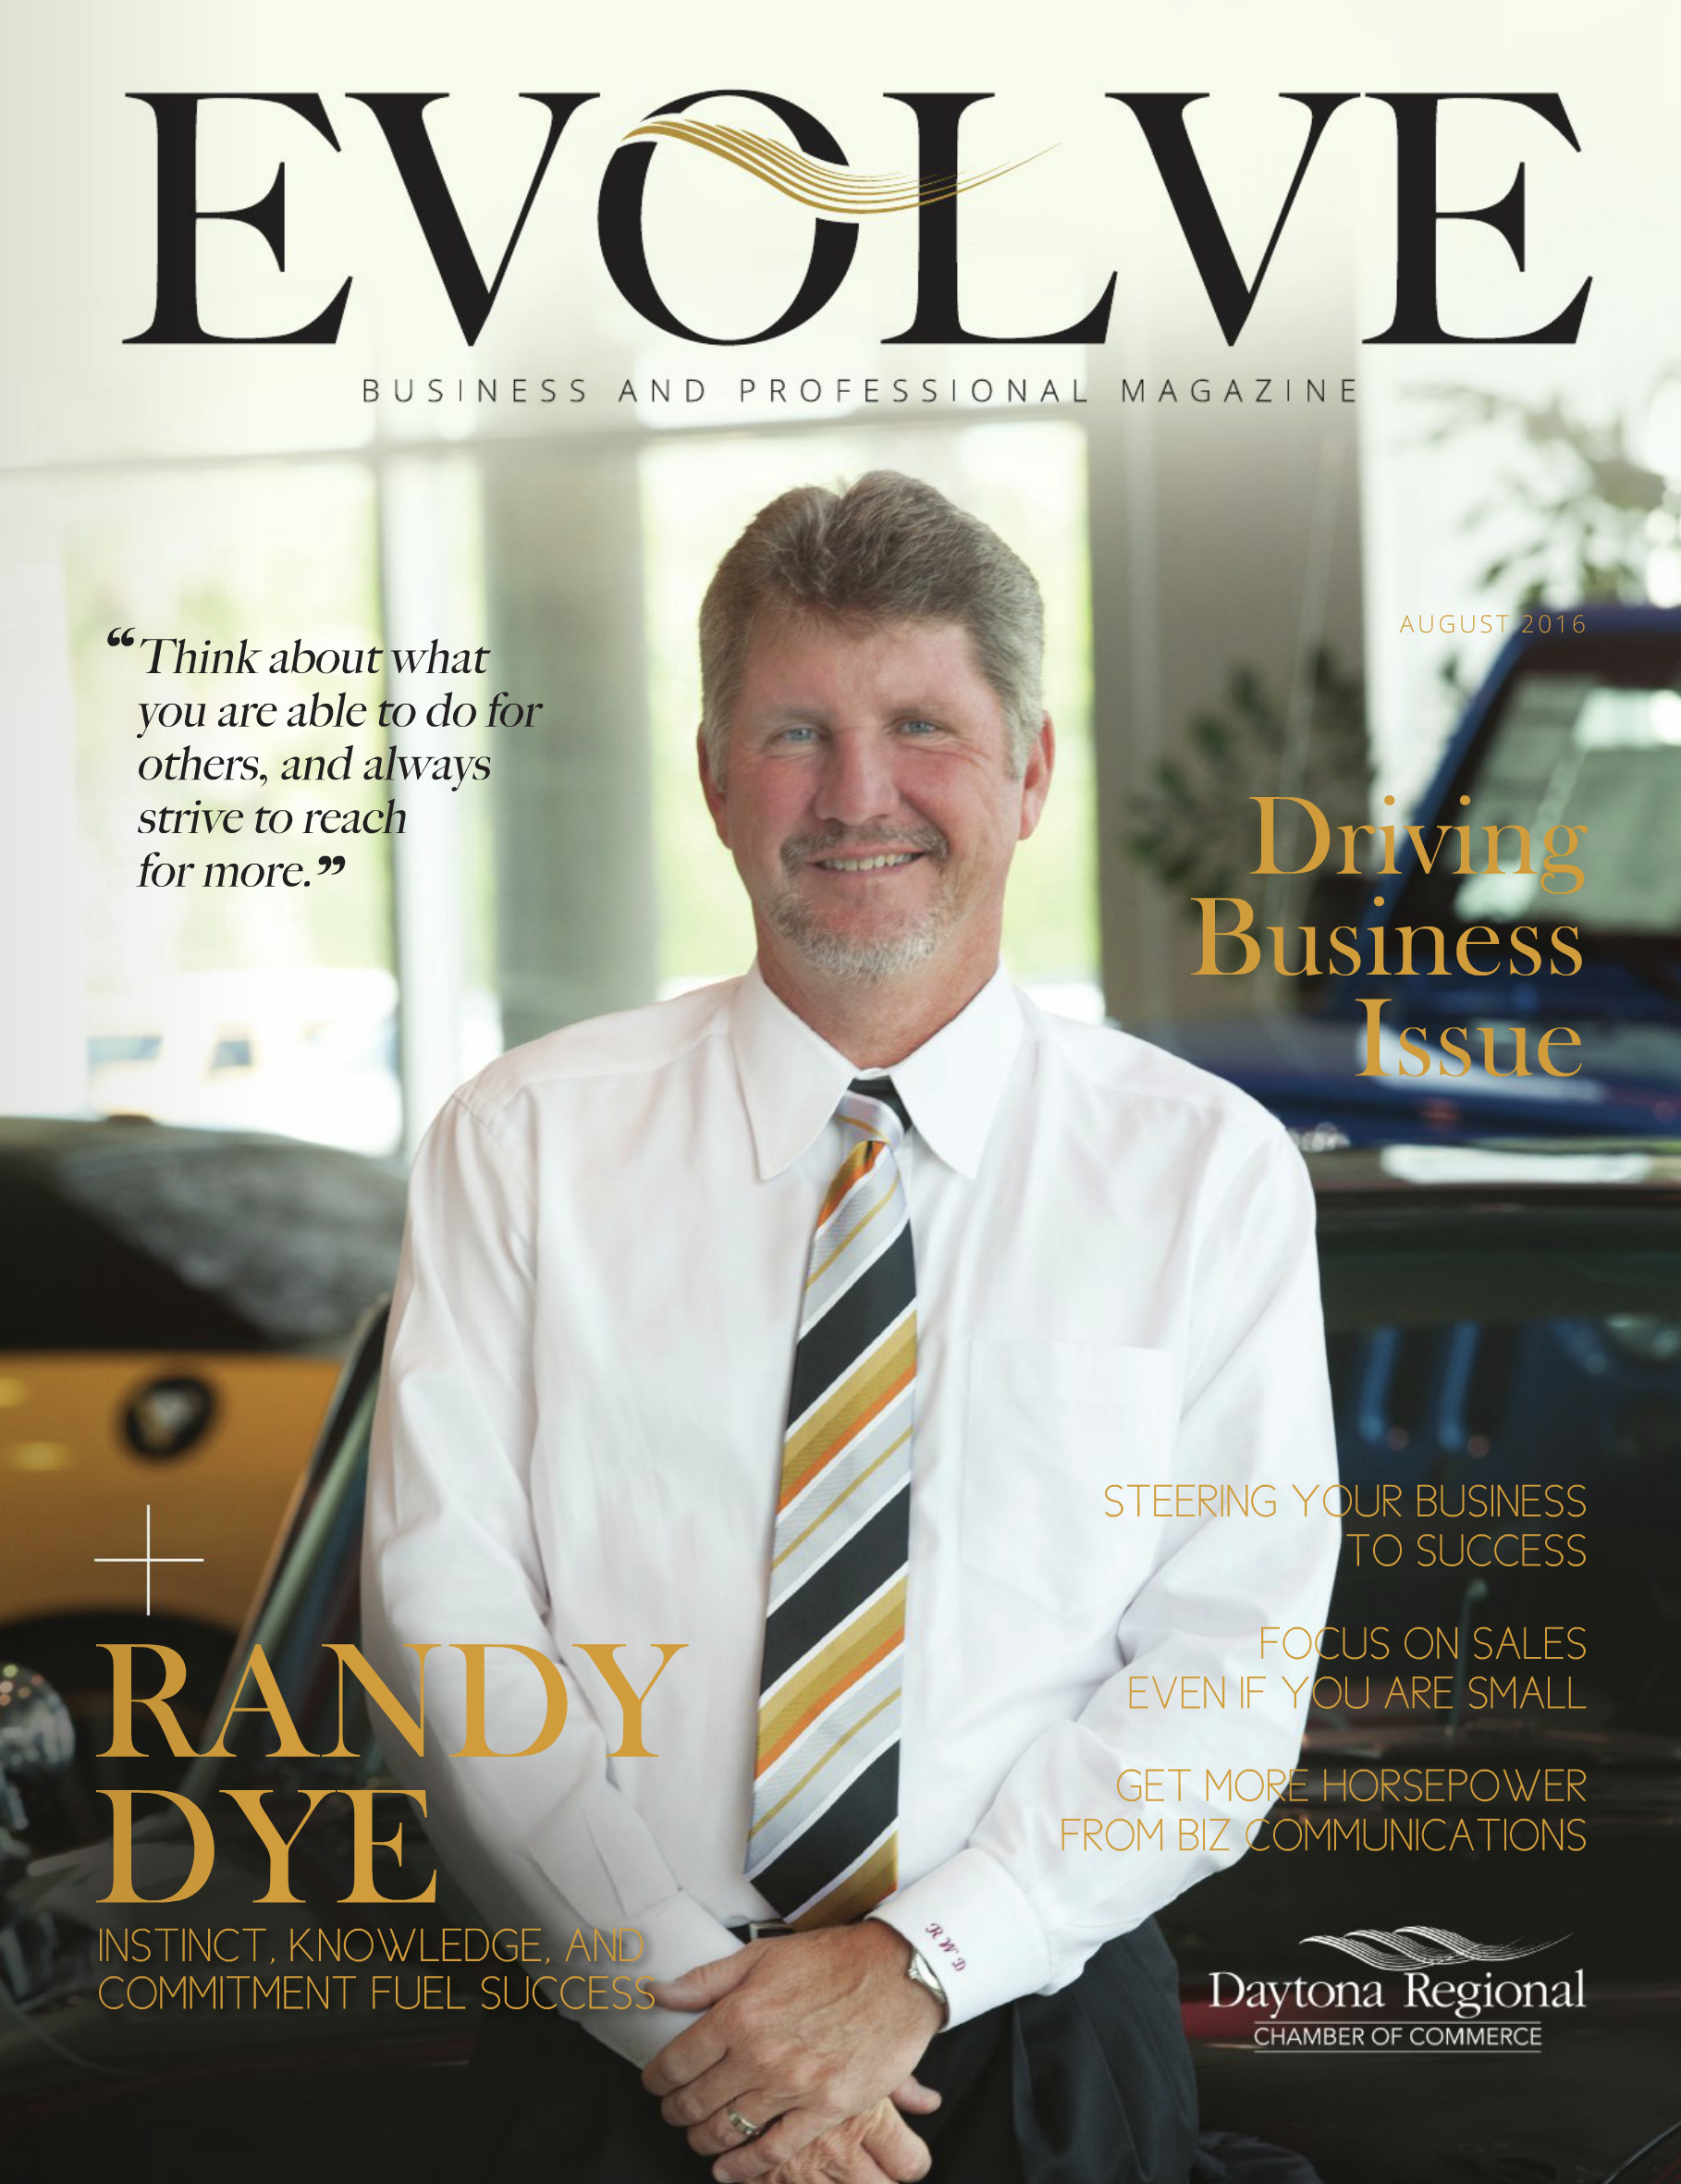 Evolve Magazine for Ormond Beach Chamber  Creative Director: Greg Hunter  Photography: Greg Hunter